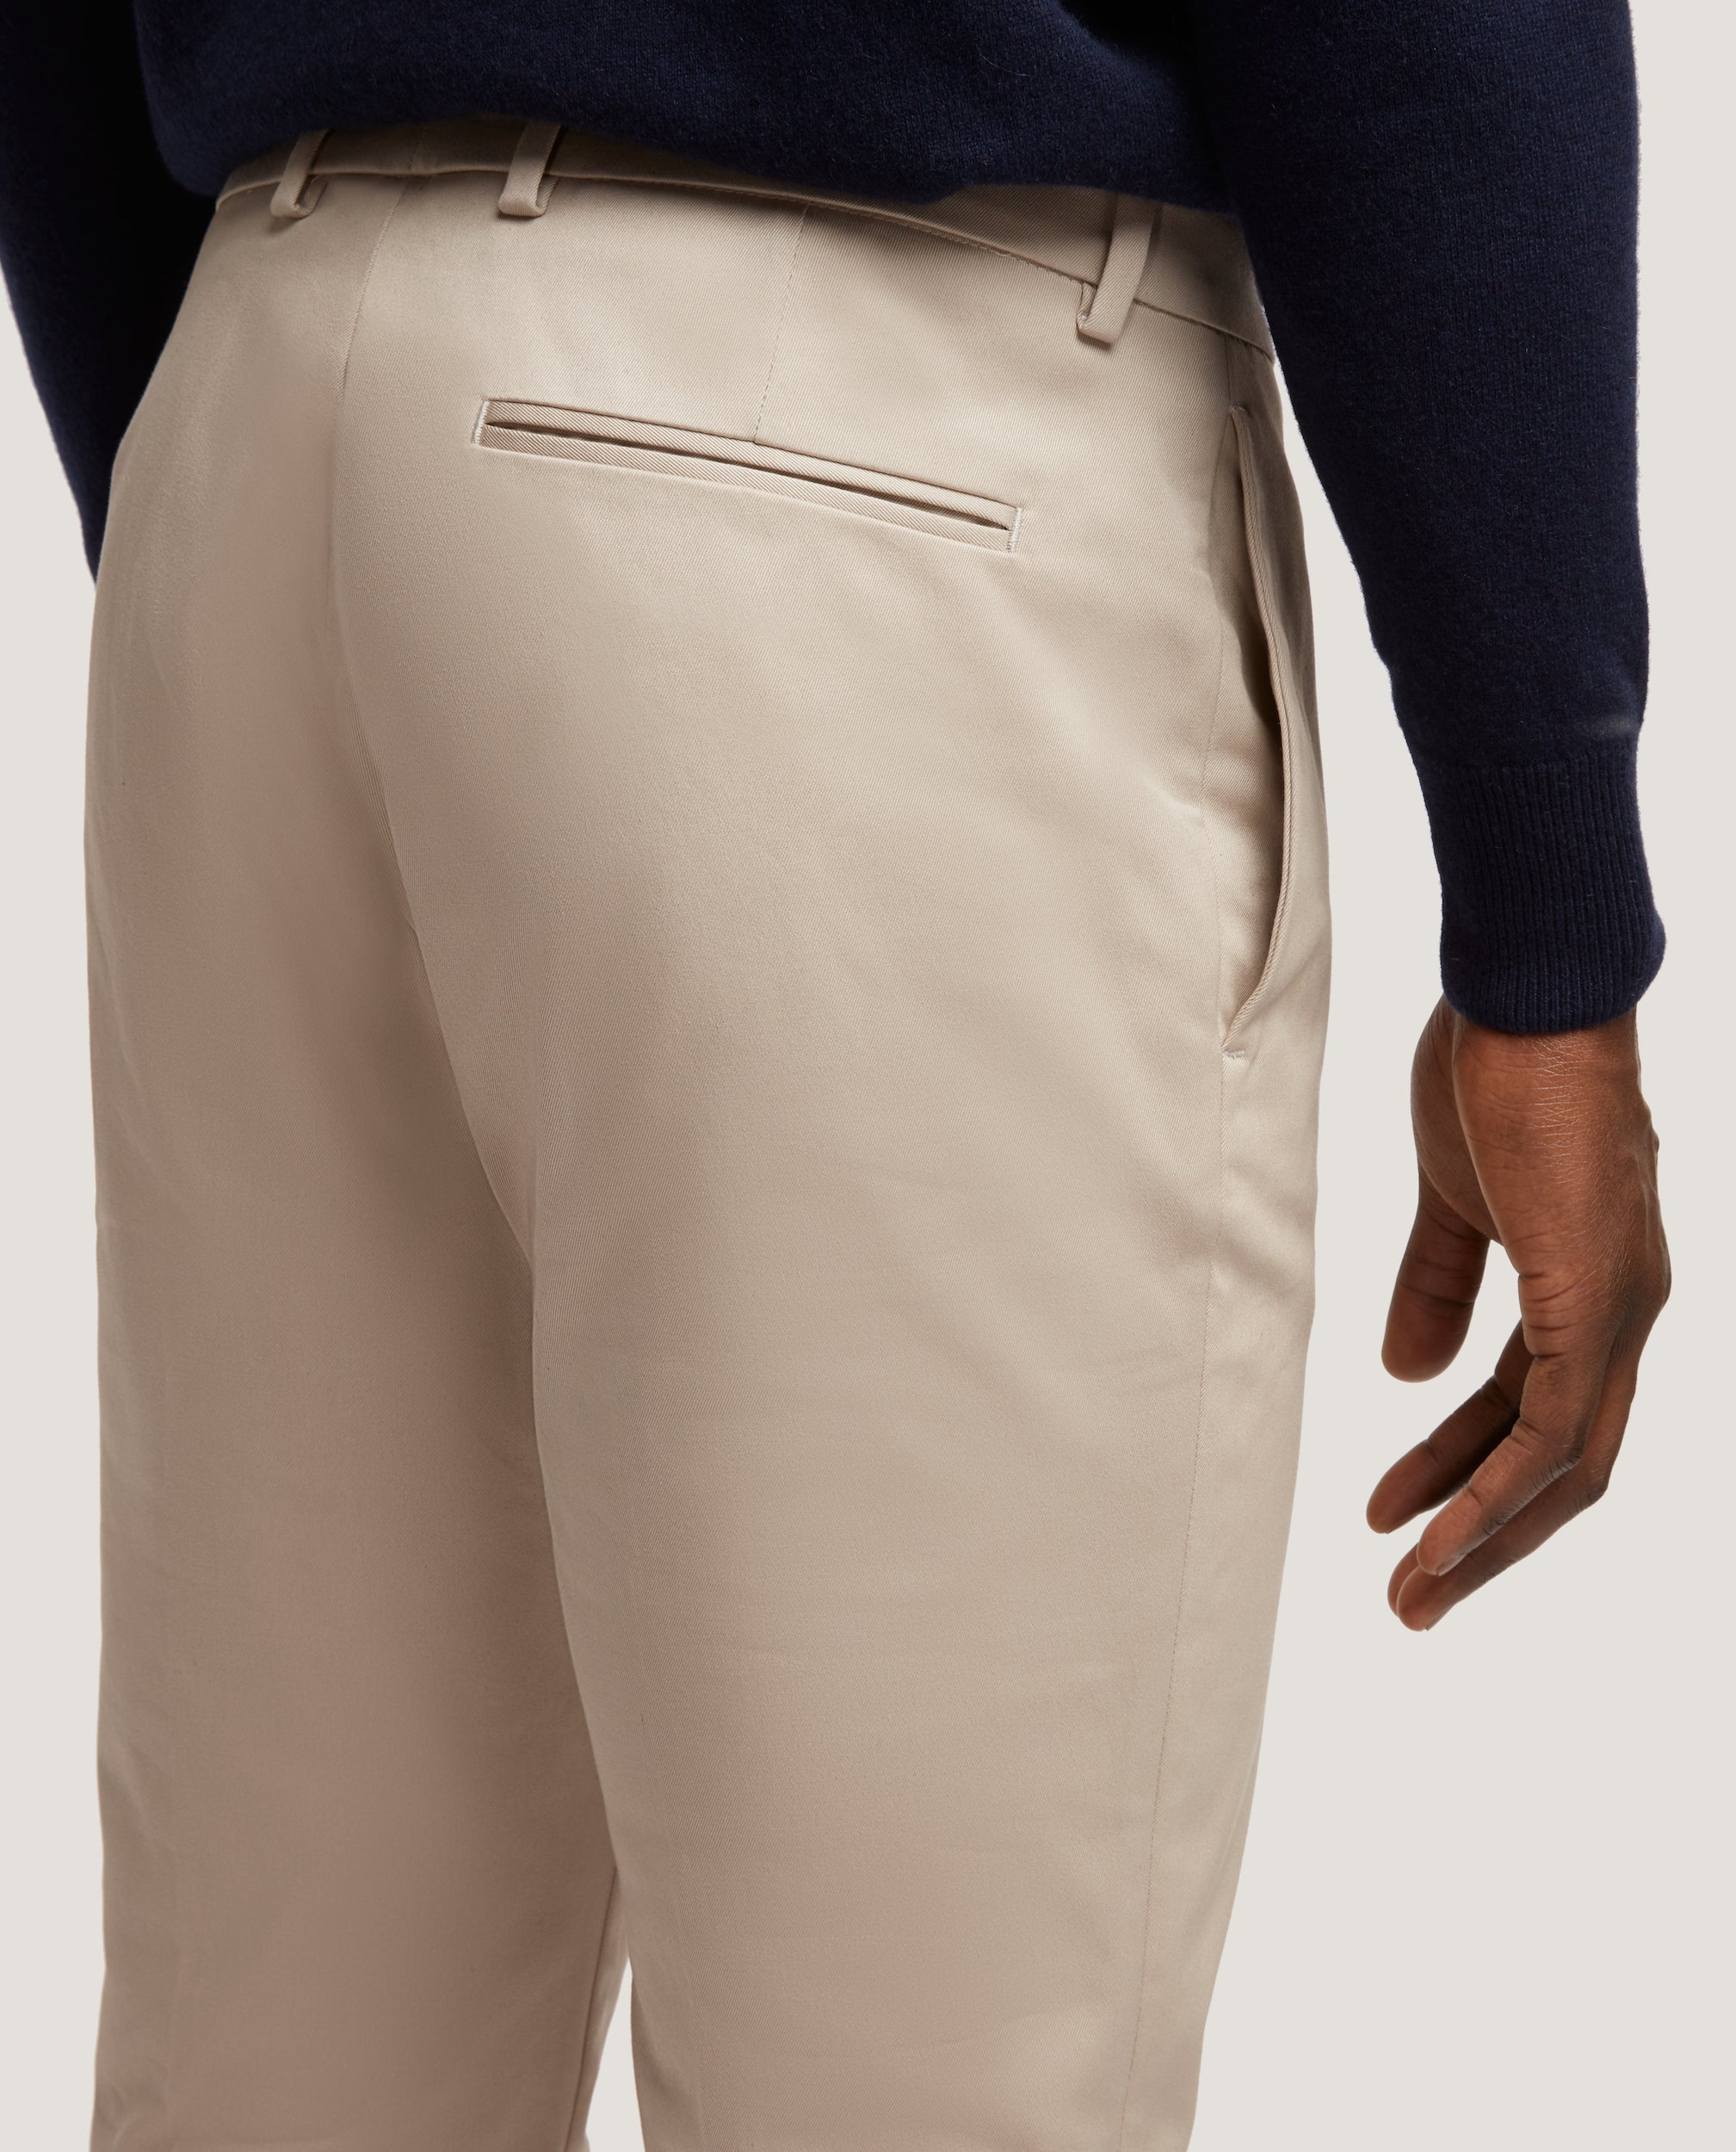 CASS Chino trousers | Slim fit | Cotton twill | Pebble